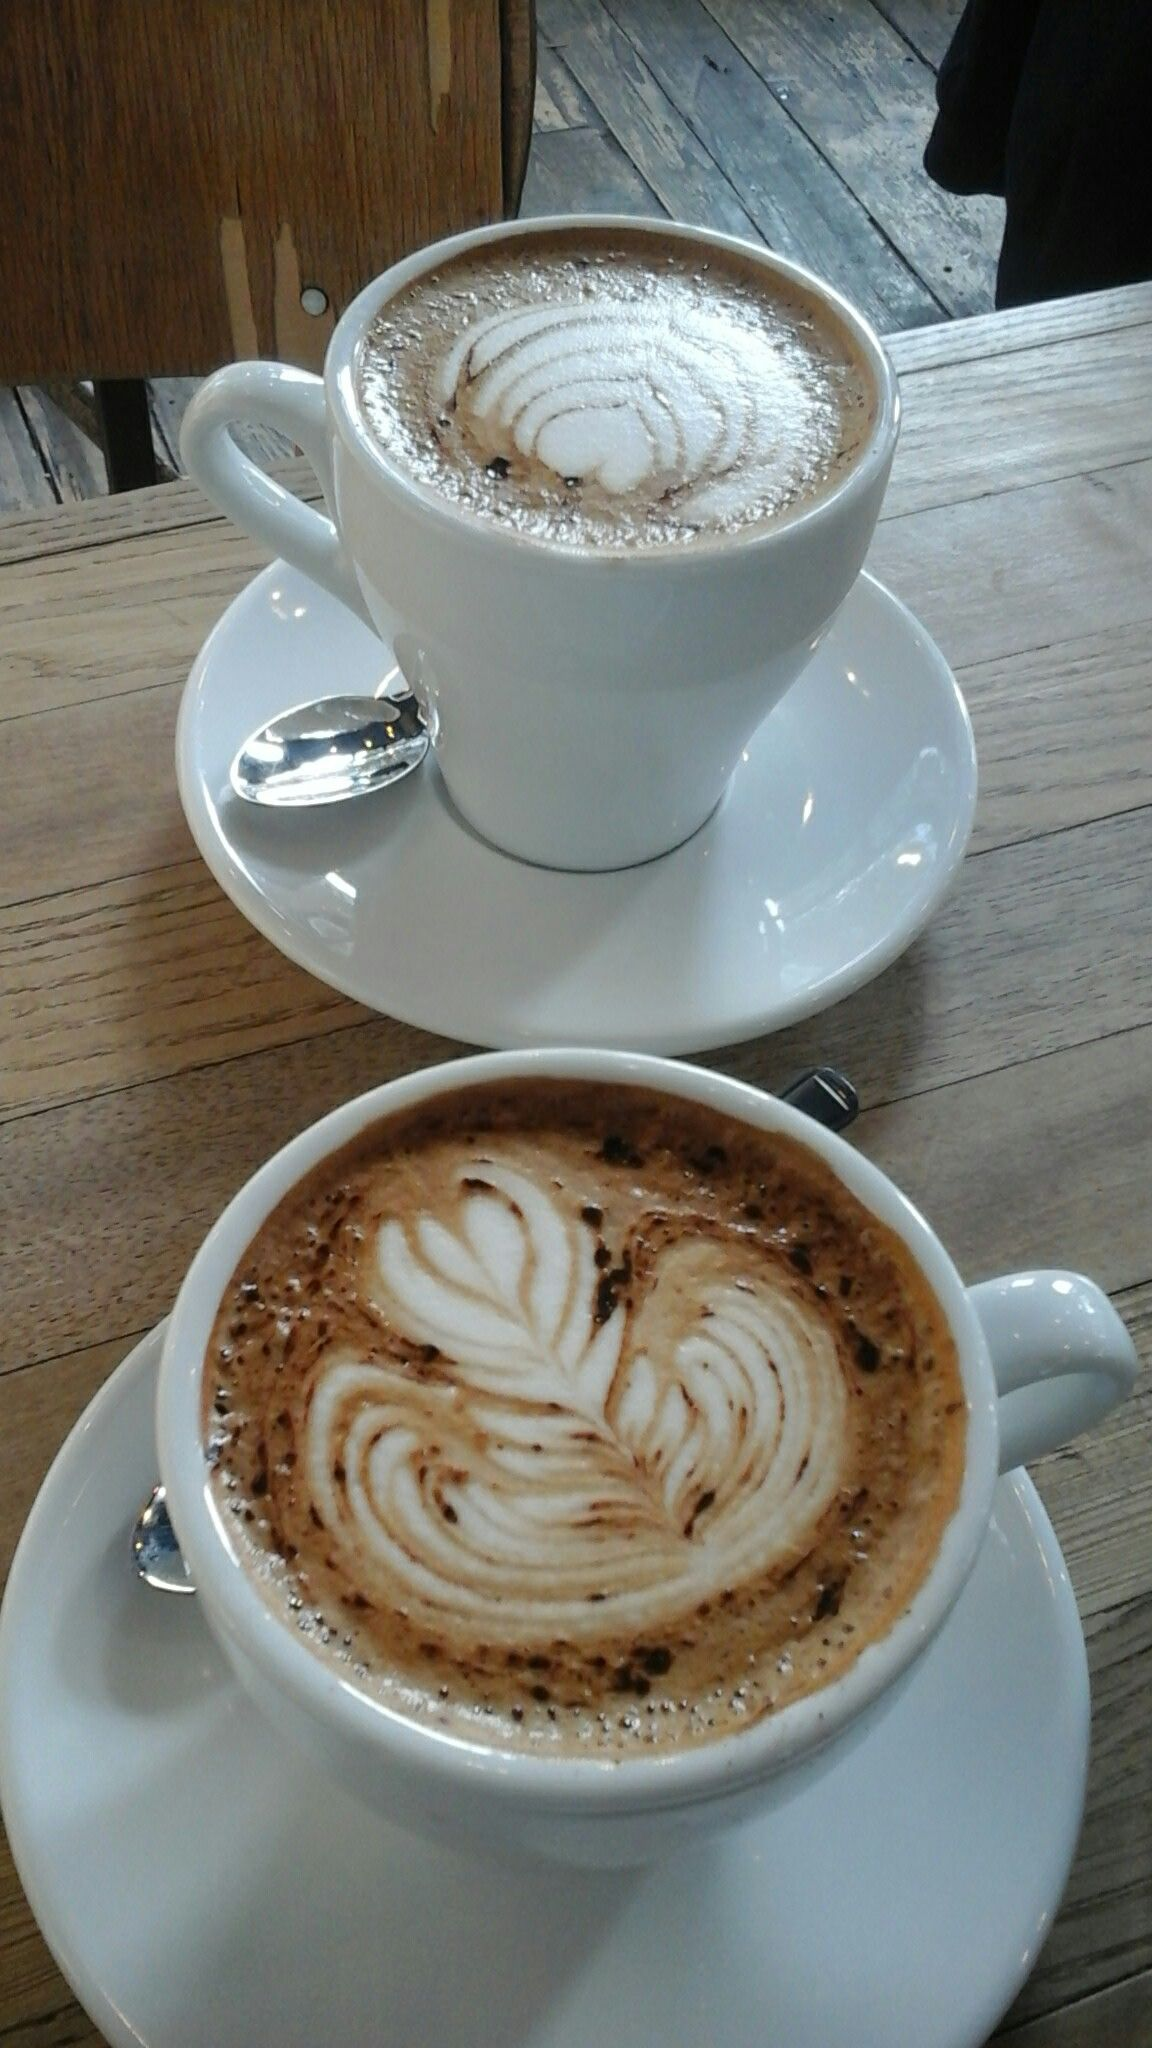 Lack of ideas or places to go to have a decent coffee in